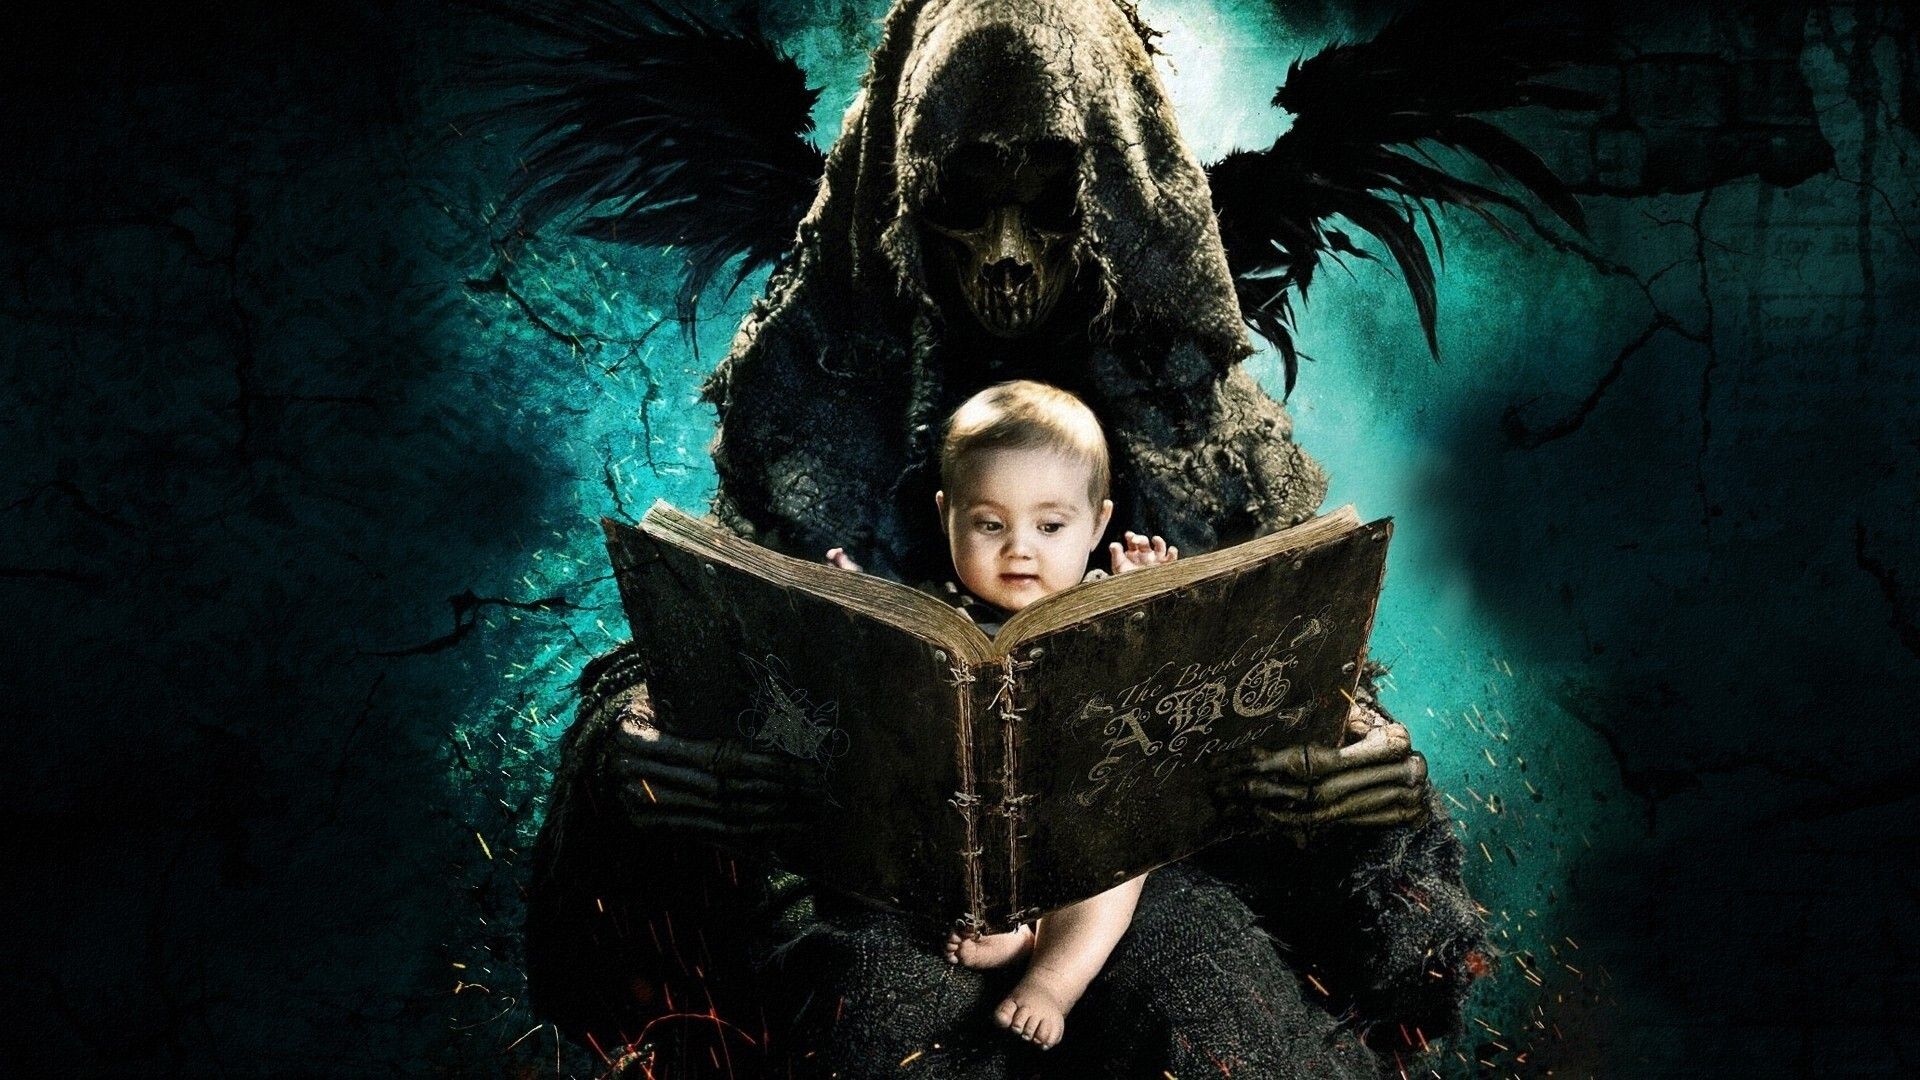 http://www.hdnicewallpapers.com/Walls/Big/Ghost%20and%20Demon/Ghost_with_Baby_Pics.jpg